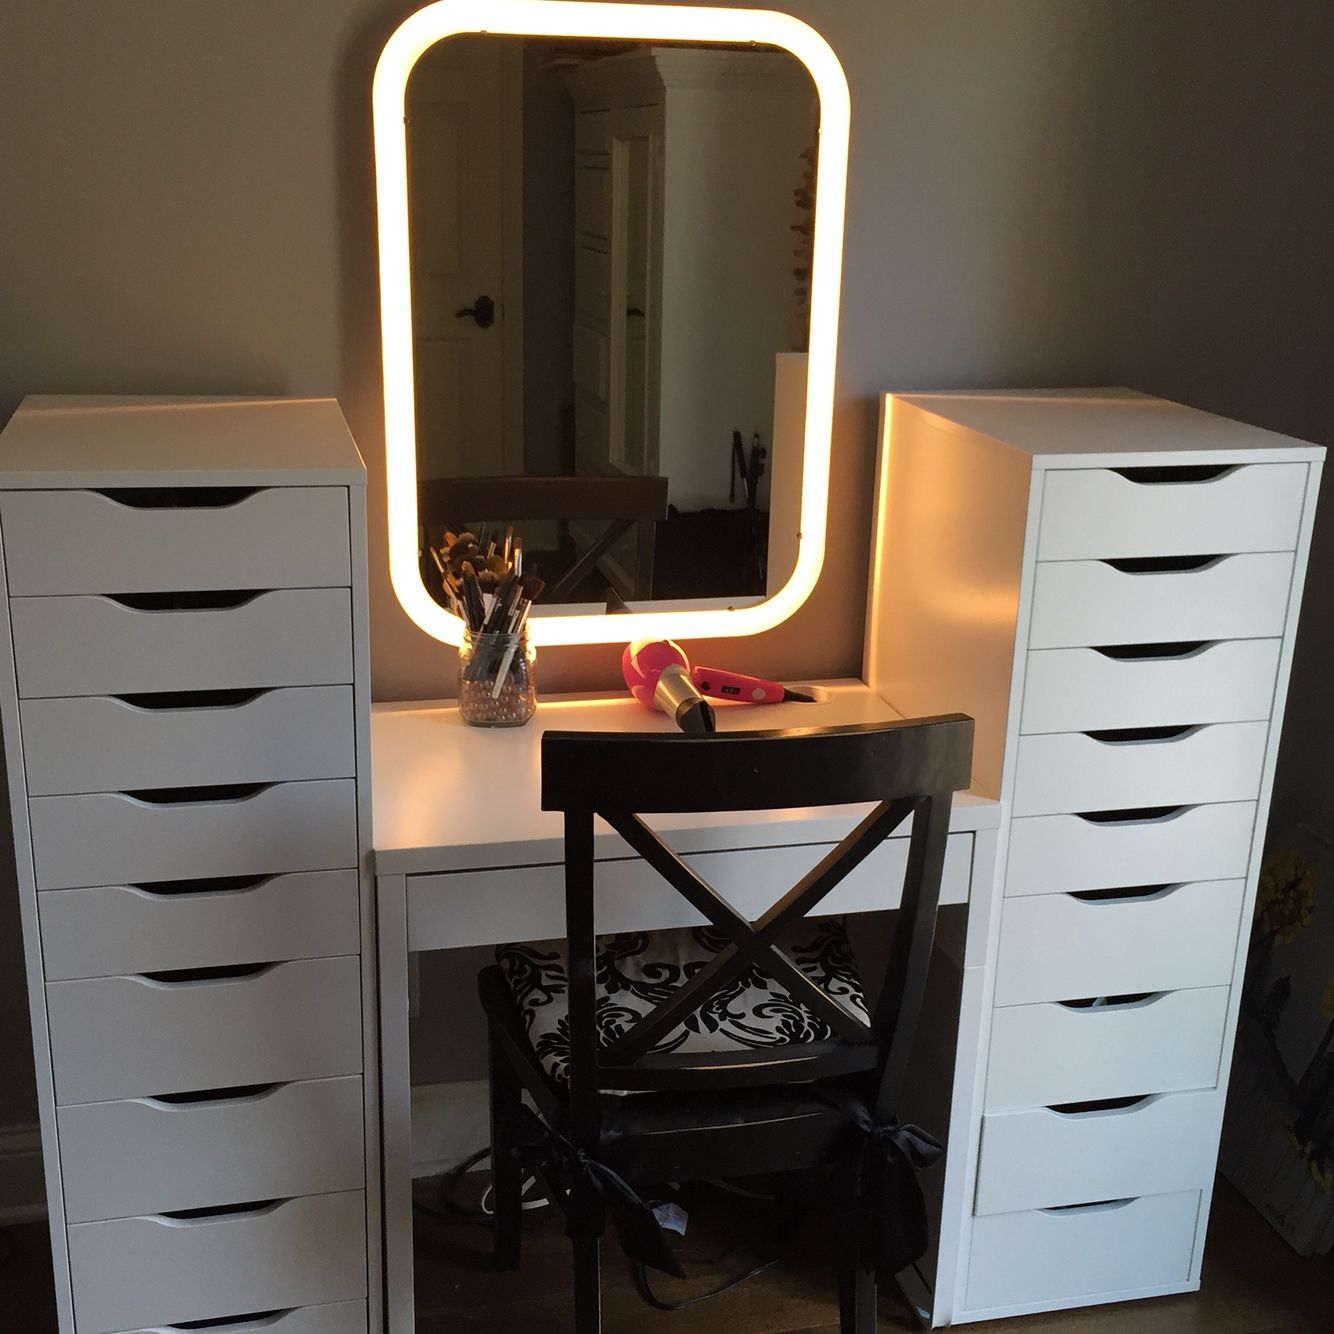 Ikea Makeup Station 1 Micke Desk 2 Alex Drawer Sets Storjorm Mirror Tons Of Storage